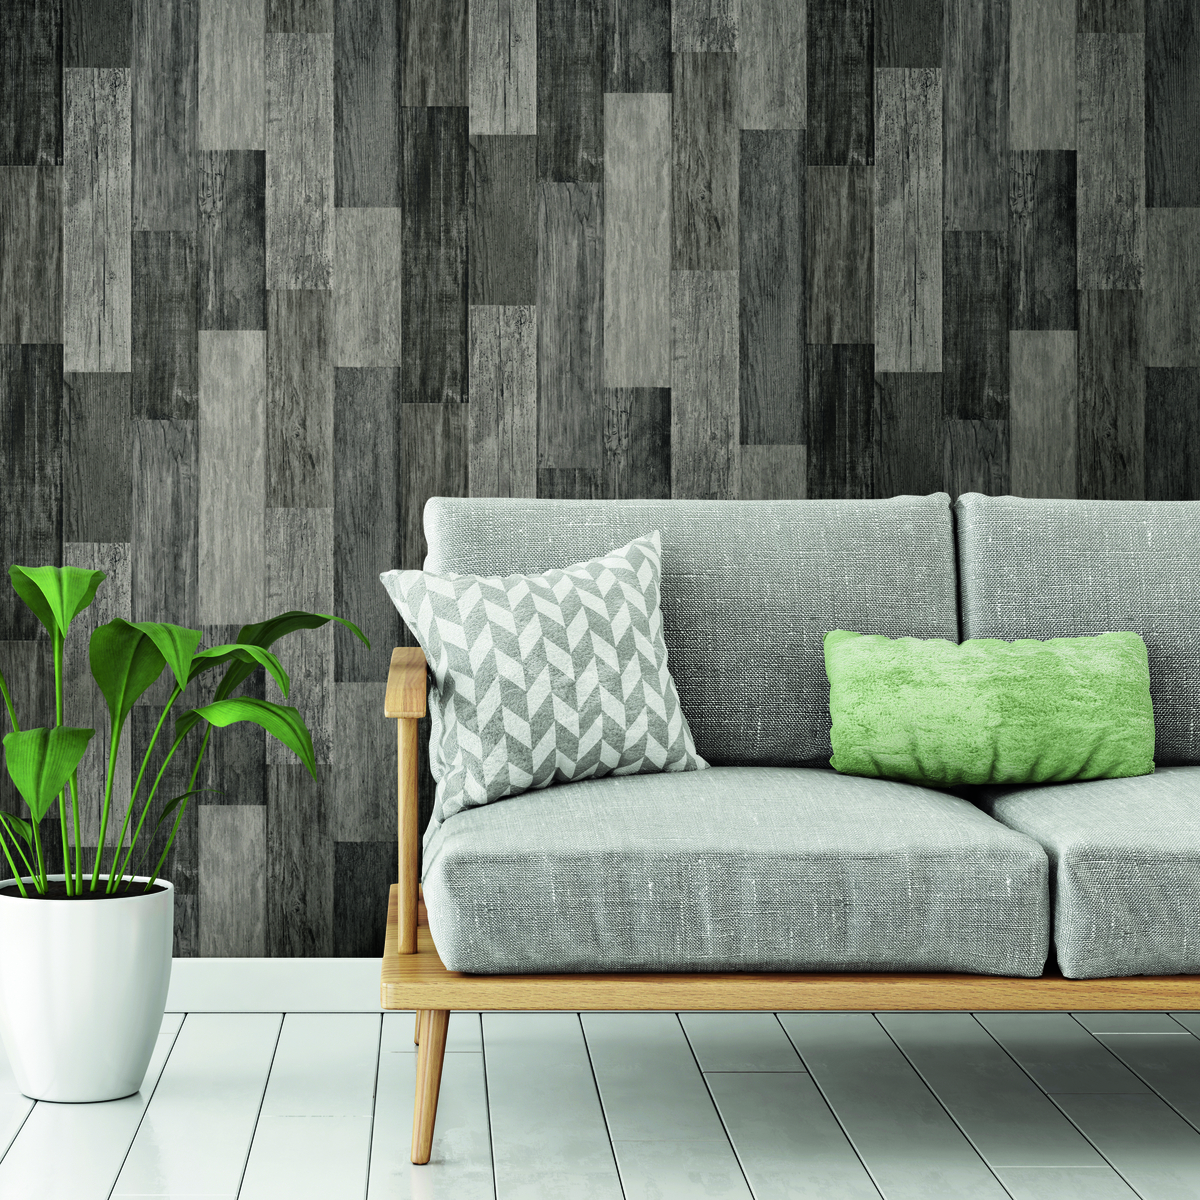 Weathered Wood Plank Black Peel Stick Wallpaper Peel And Stick Decals The Mural Store